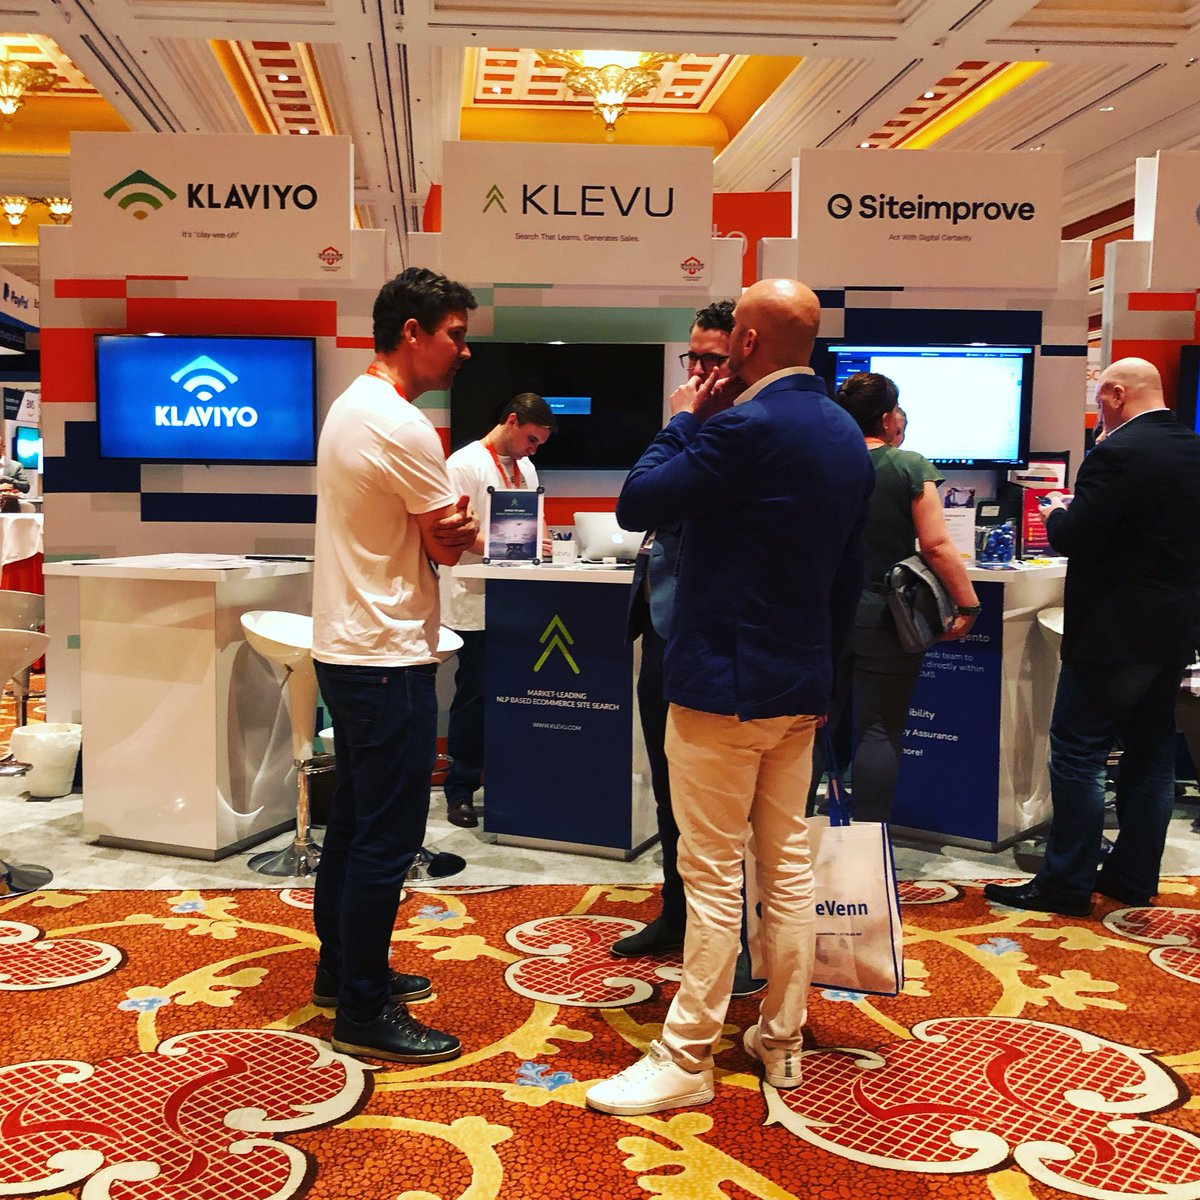 klevusearch: Jussi and Ford representing the Klevu team on our booth #MagentoImagine https://t.co/qJOi6pA8B8